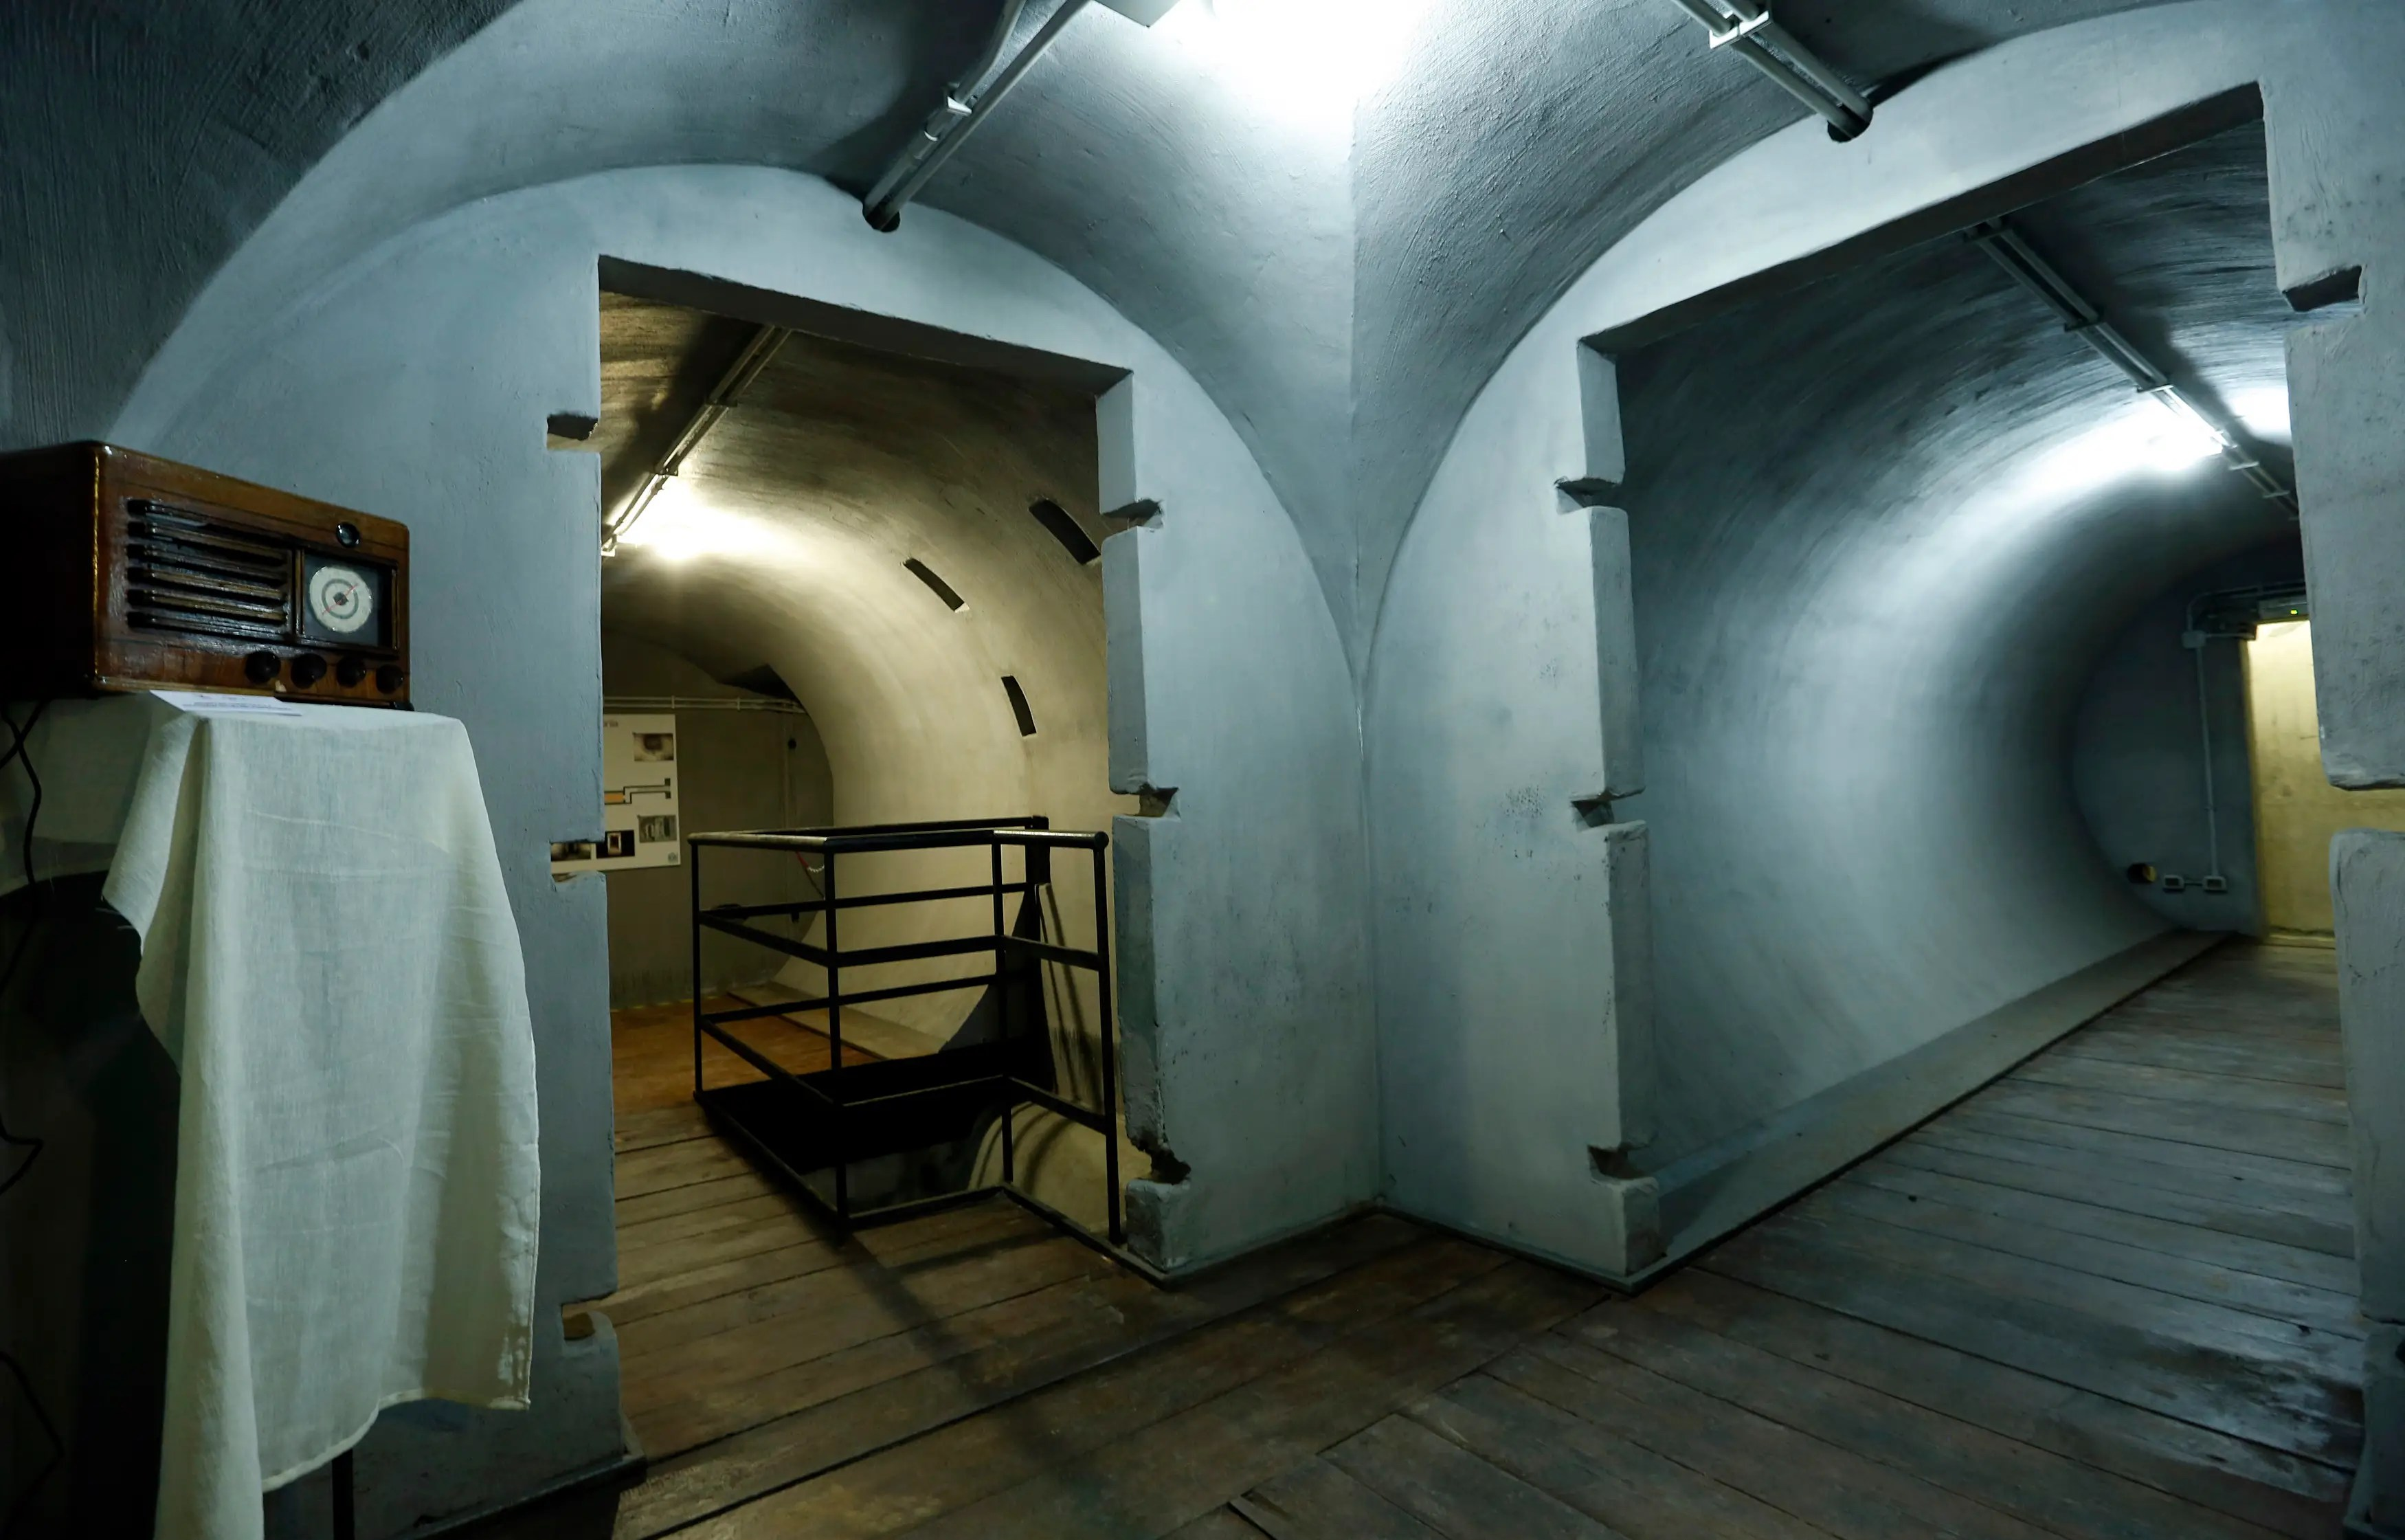 The bunker is located below Villa Torlonia, the Roman residence of Mussolini since 1922. It's just a short walk from the Colosseum.